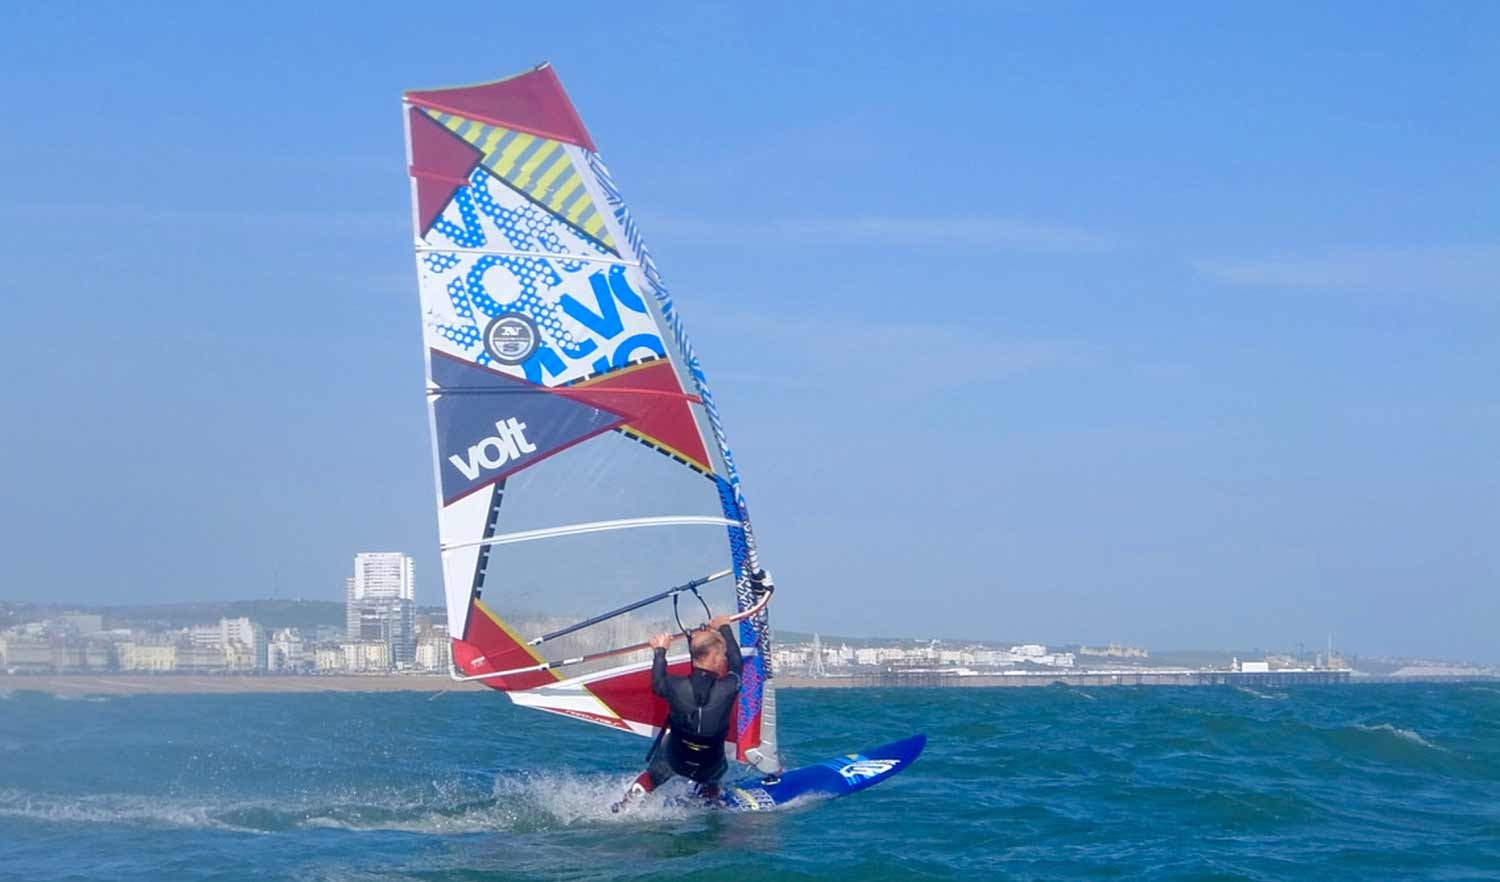 windsurfing on the sea brighton